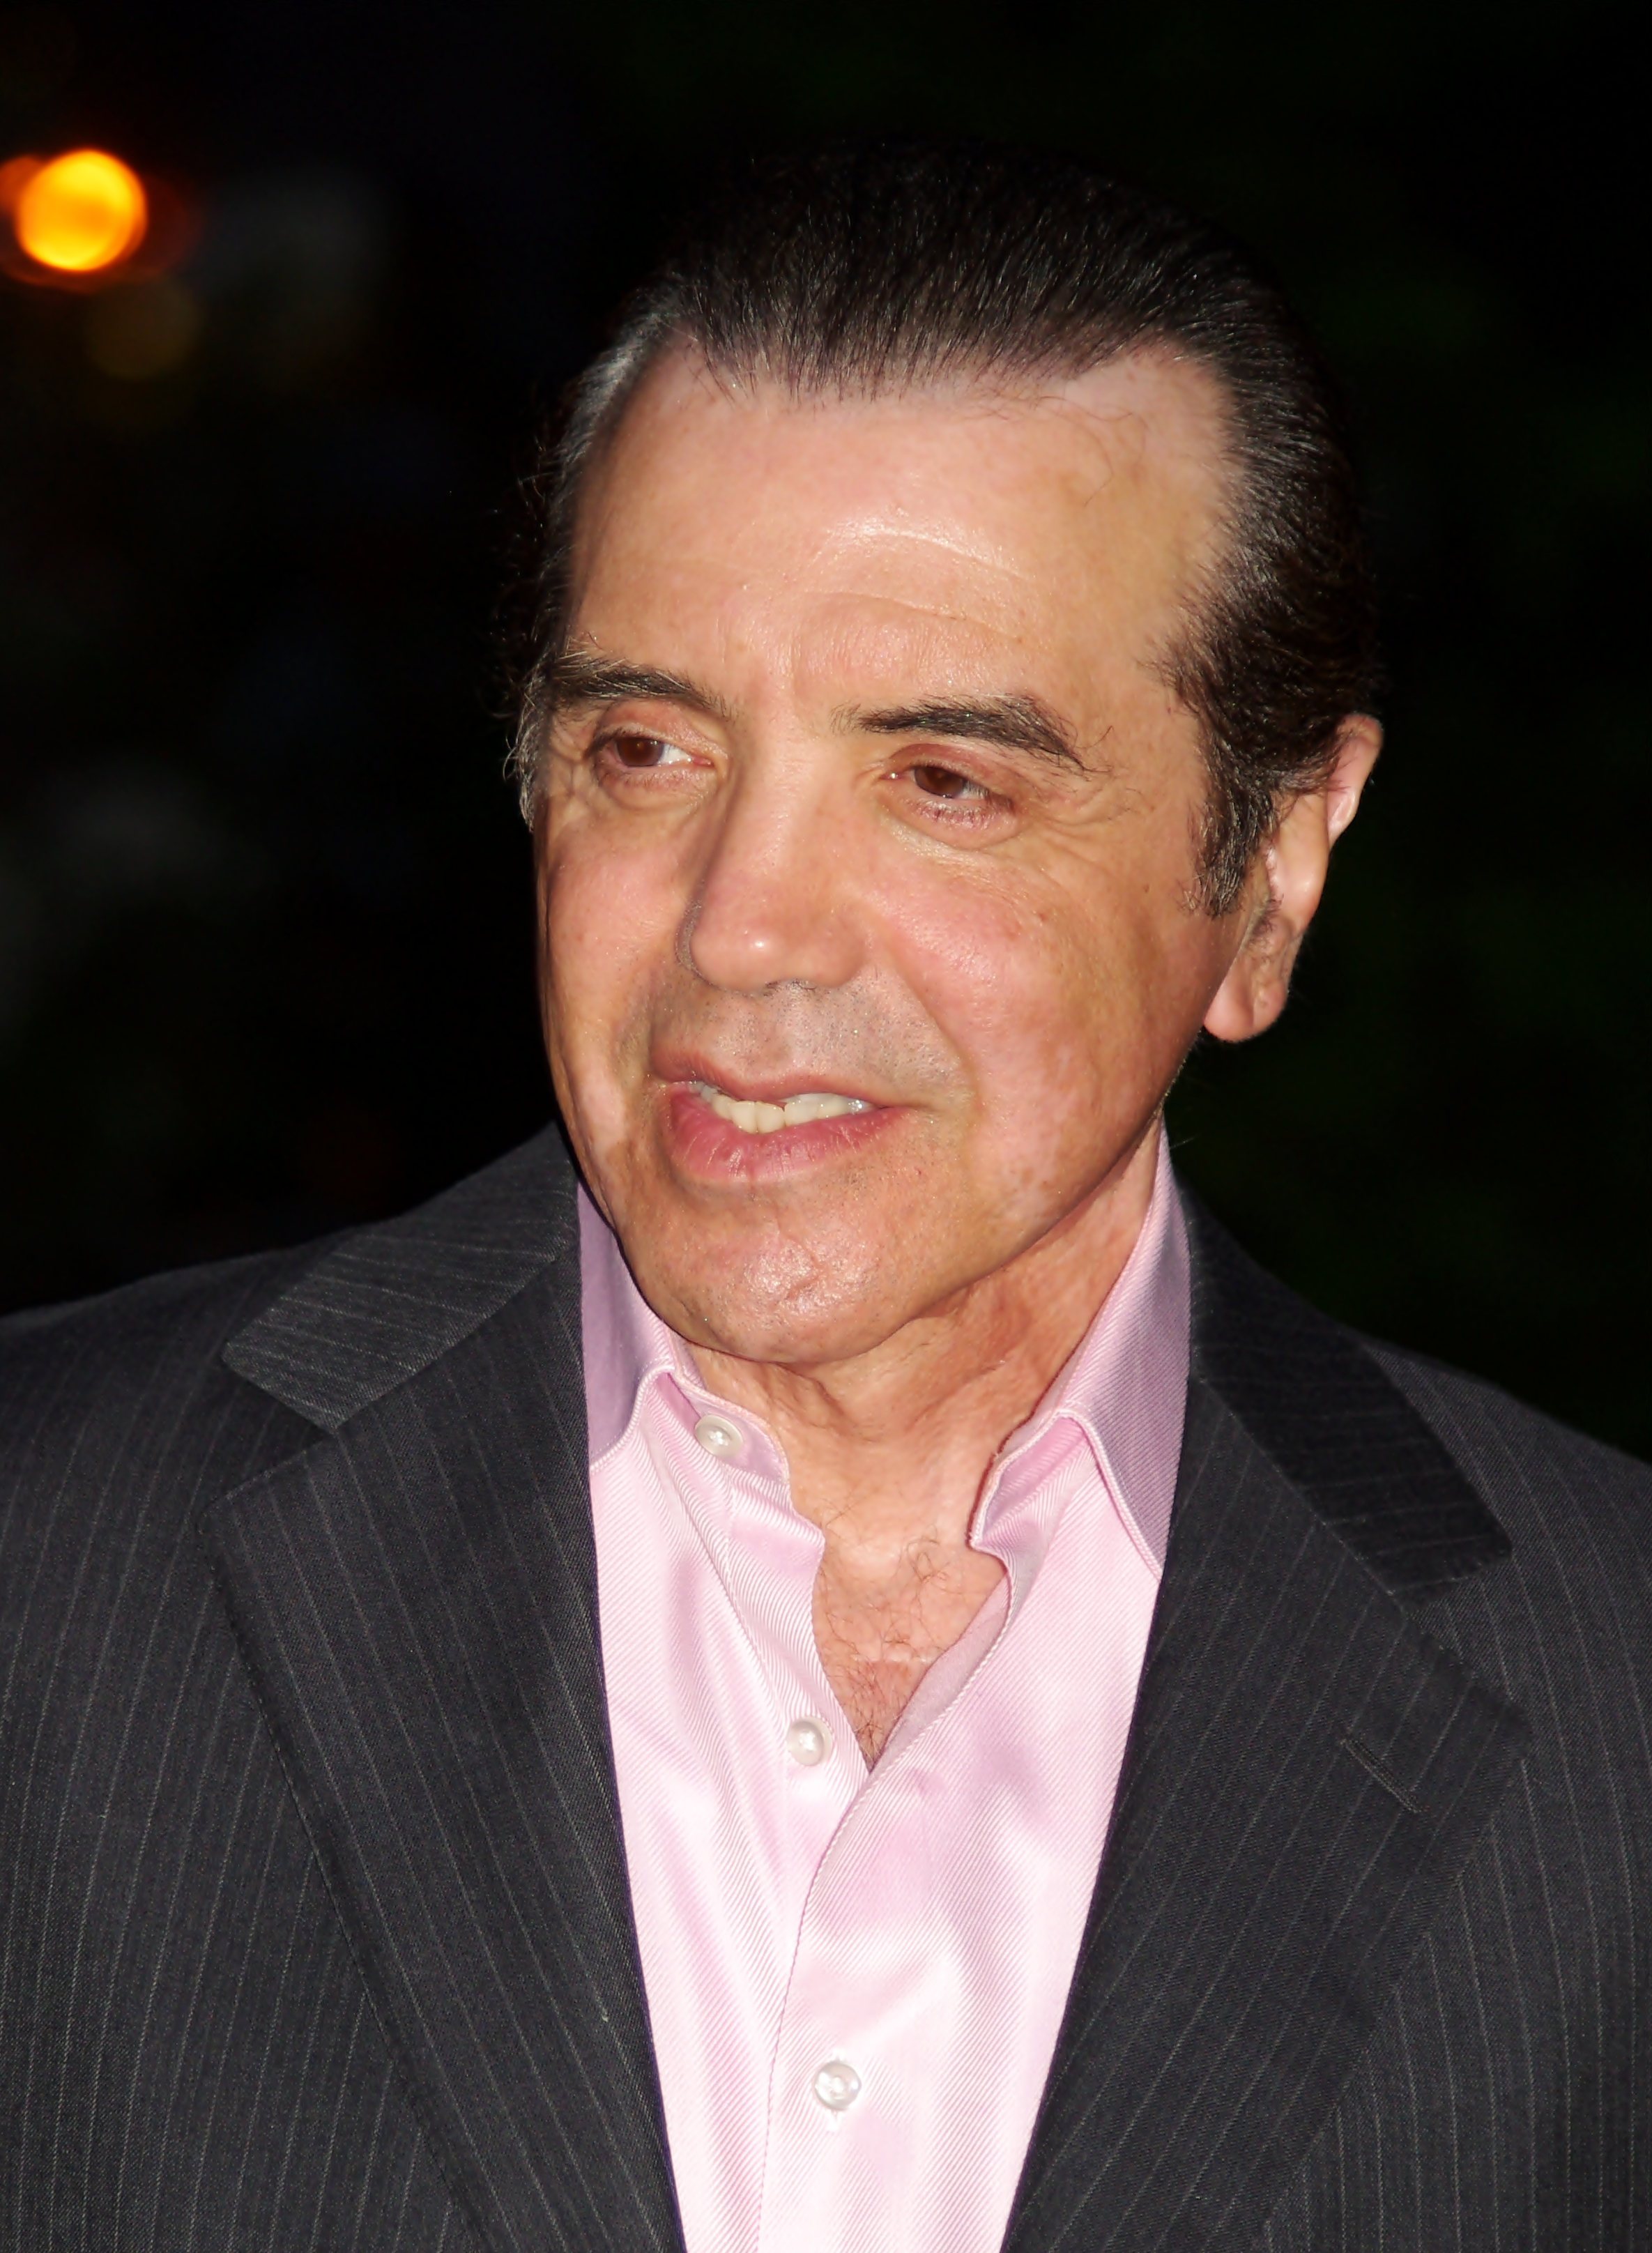 The 66-year old son of father Lorenzo Palminteri and mother Rose Palminteri Chazz Palminteri in 2018 photo. Chazz Palminteri earned a  million dollar salary - leaving the net worth at 16 million in 2018